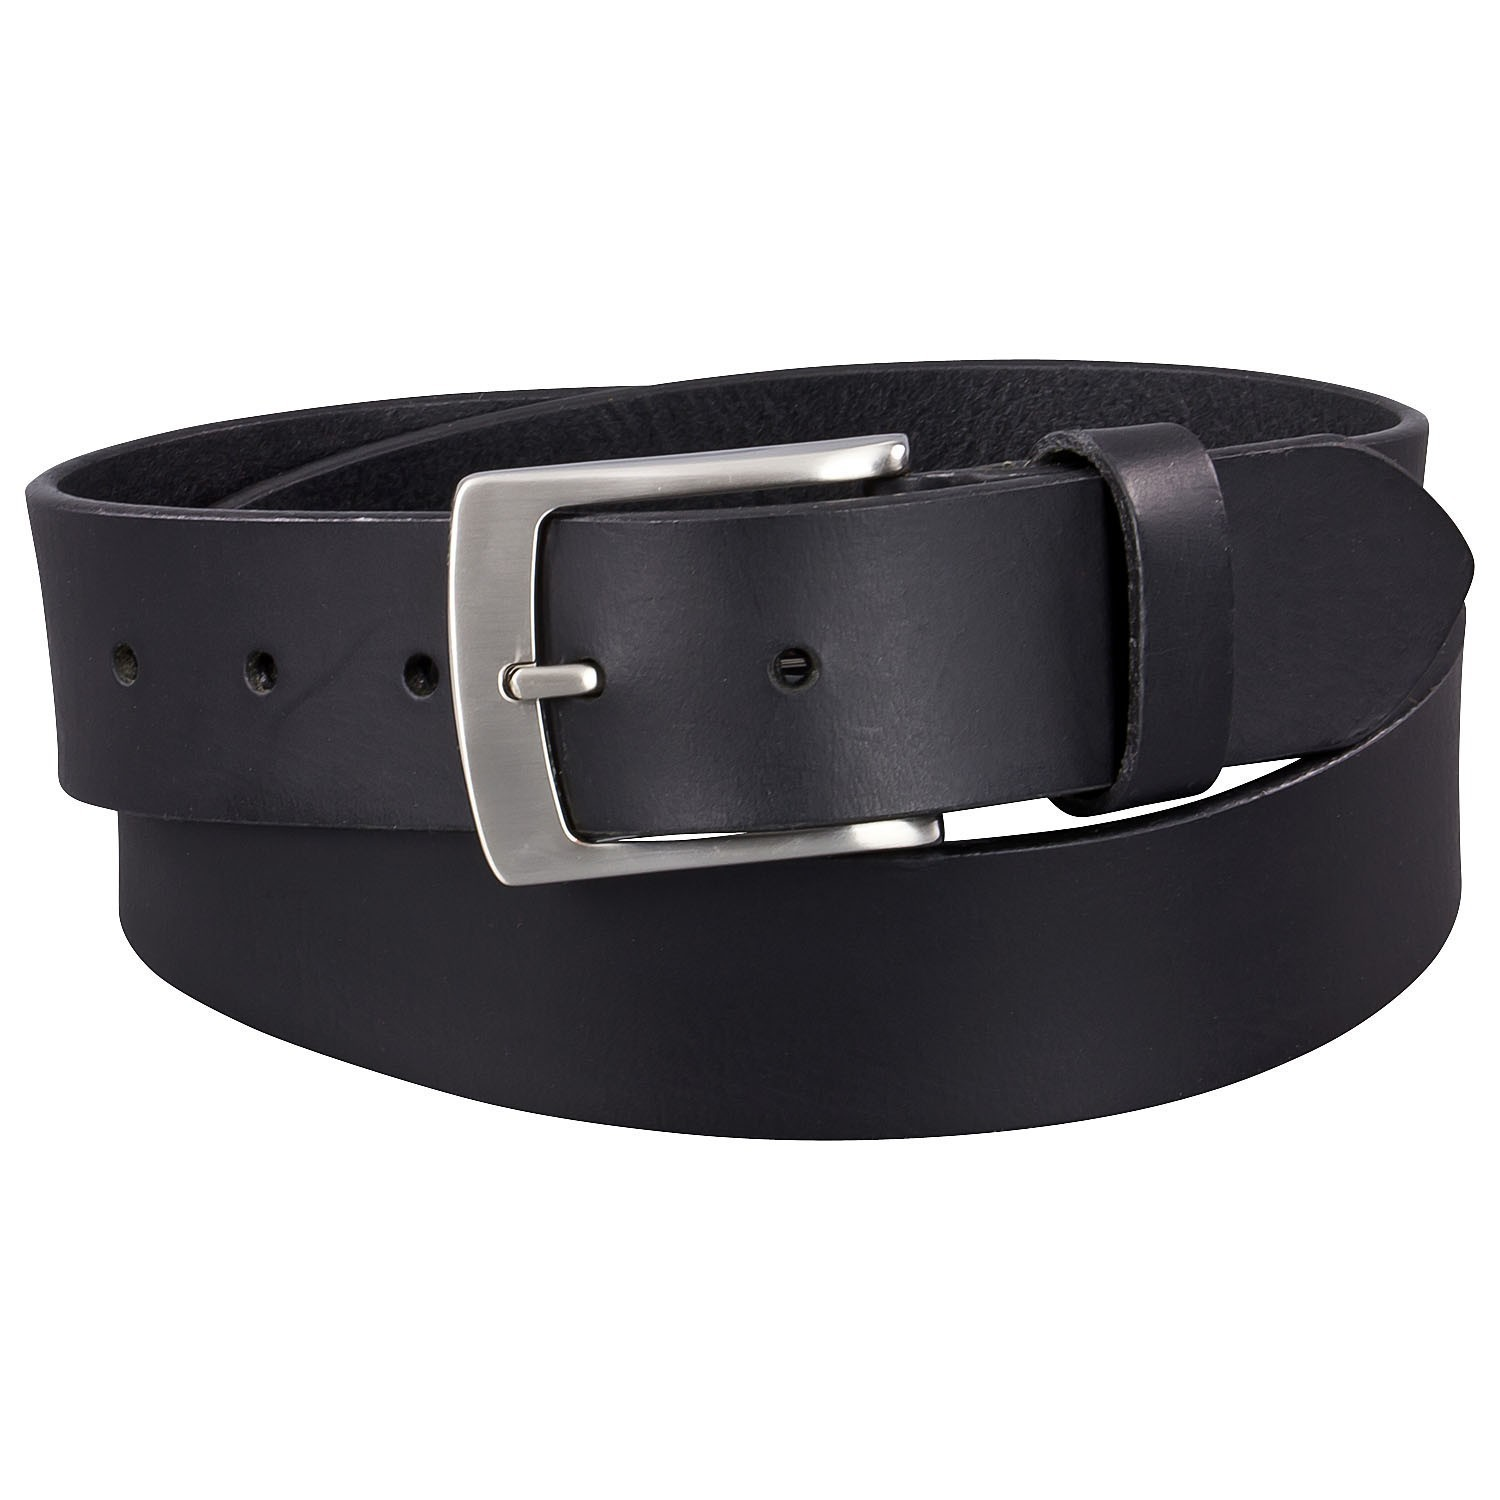 Detail Image to Black basic jeans belt up to over length 170 cm (66.9 inches) by Lindenmann